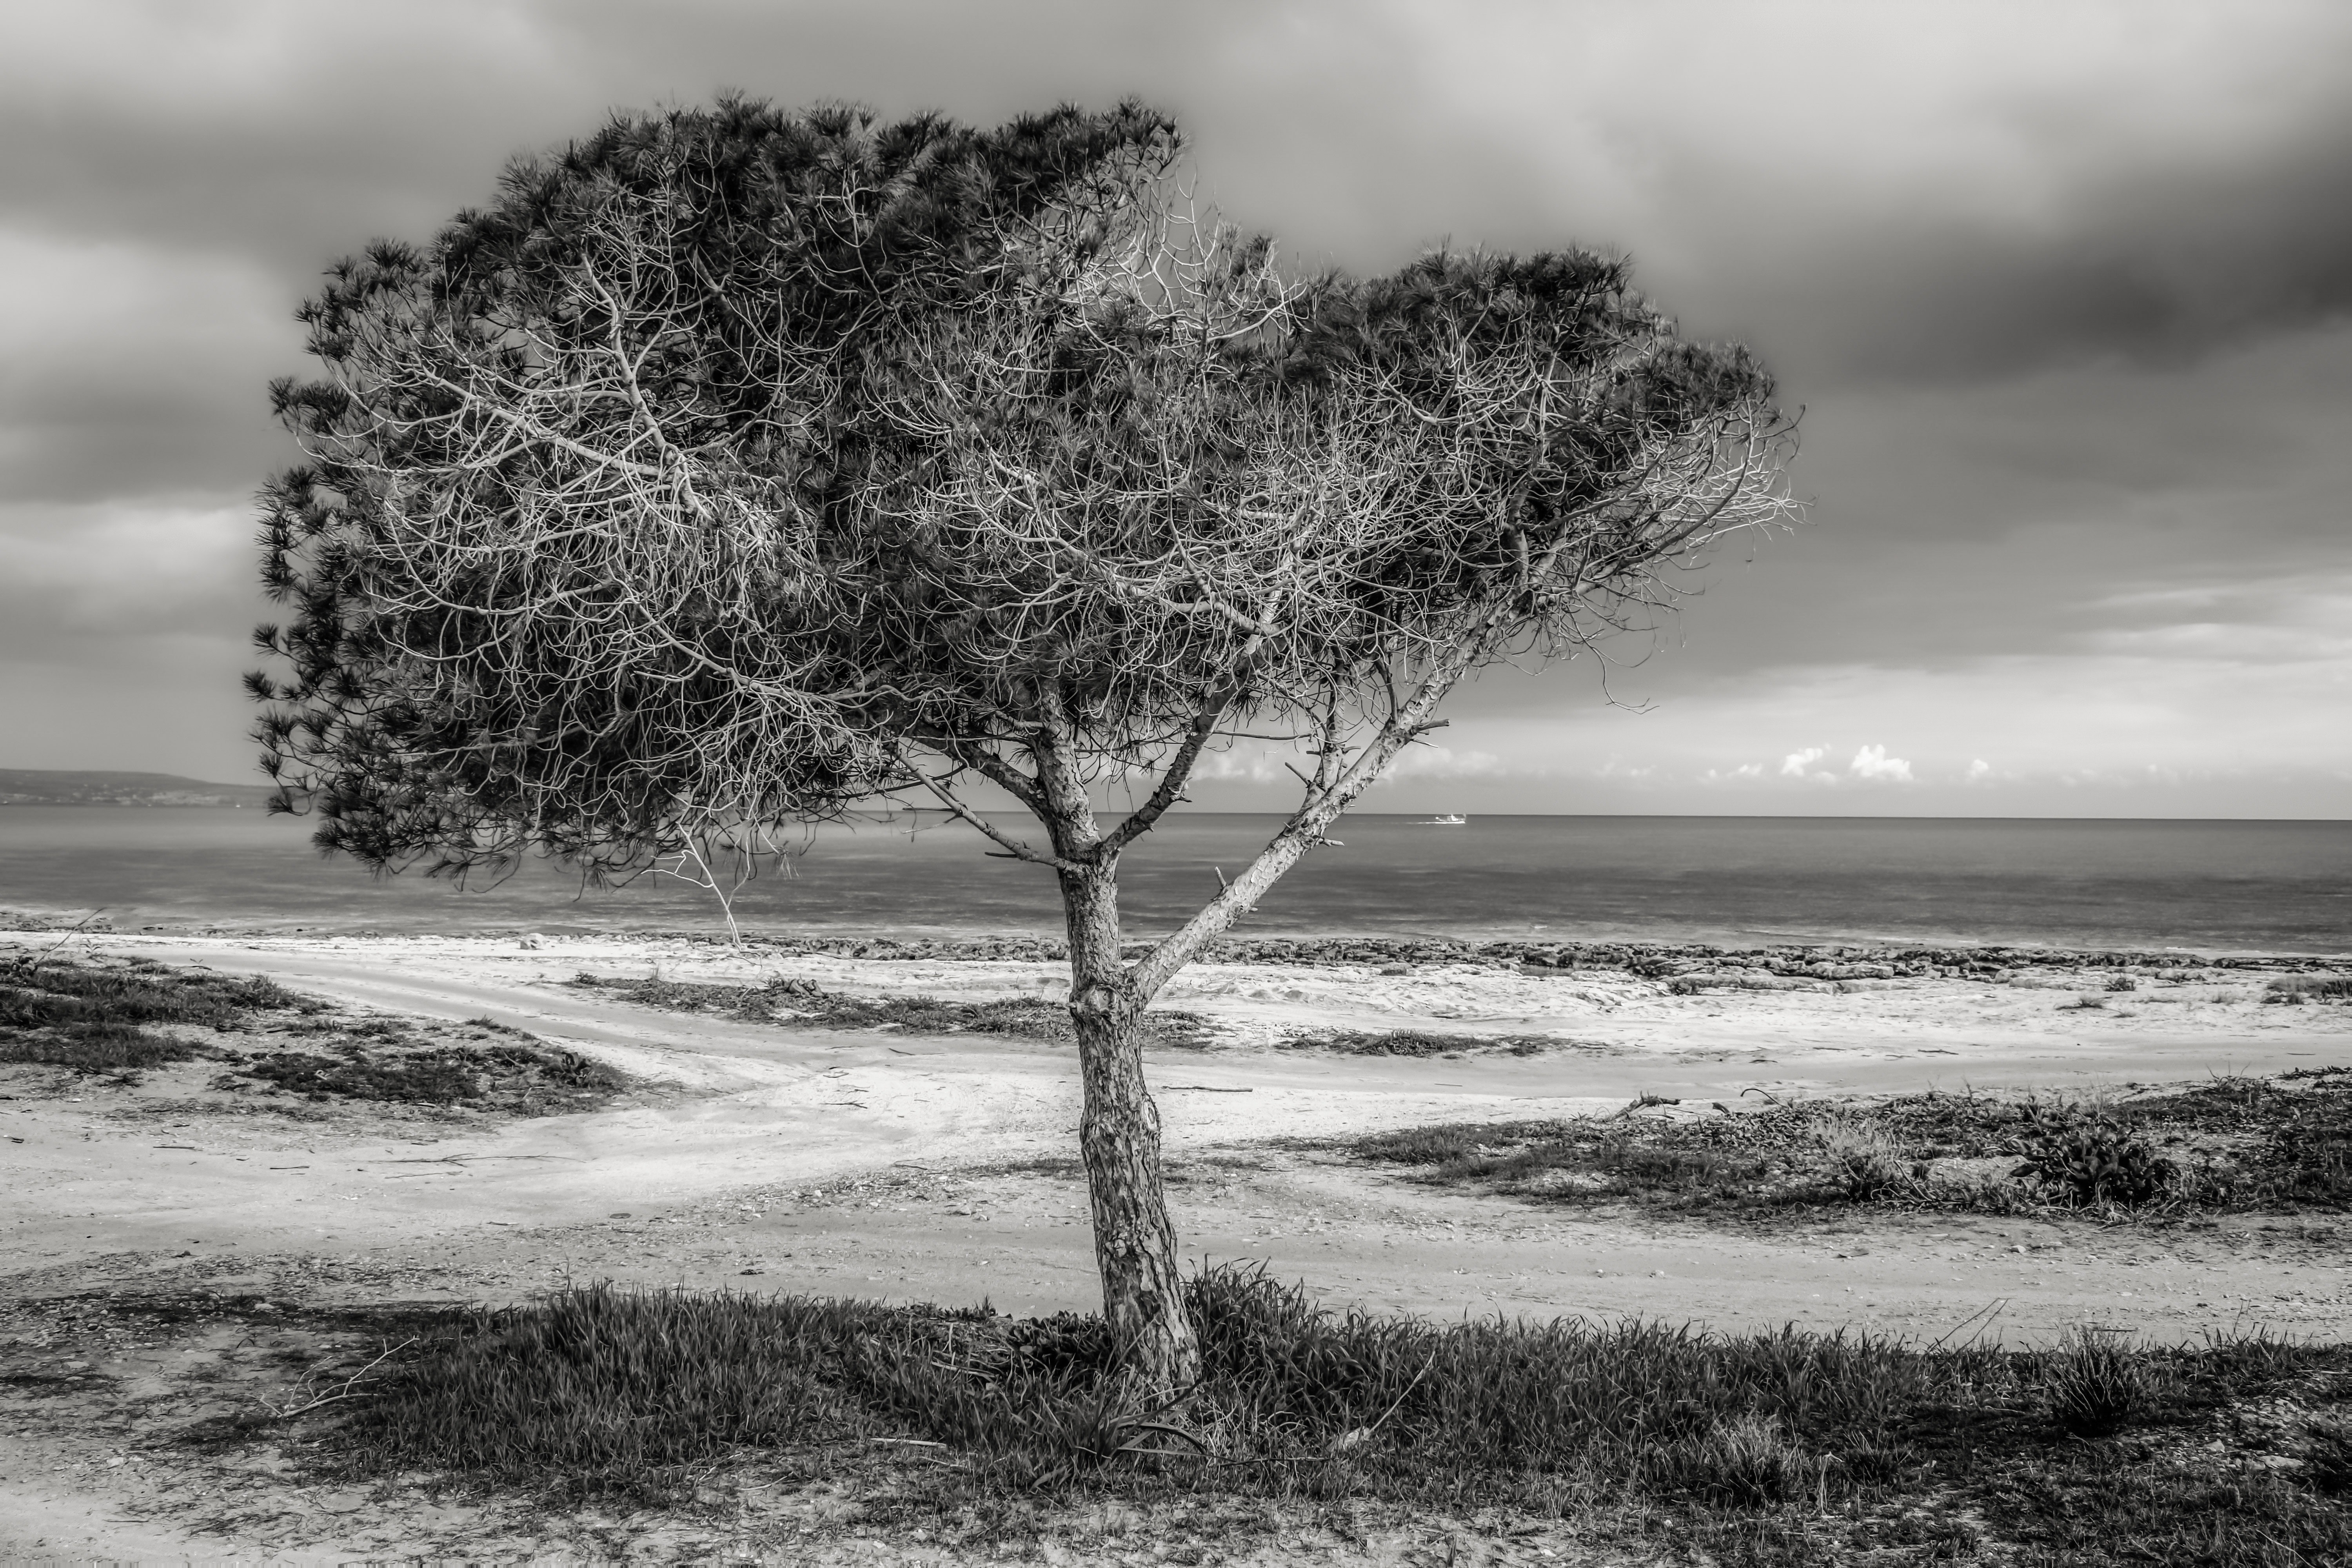 Tree on Beach Against Sky, Beach, Scenic, Water, Tree, HQ Photo